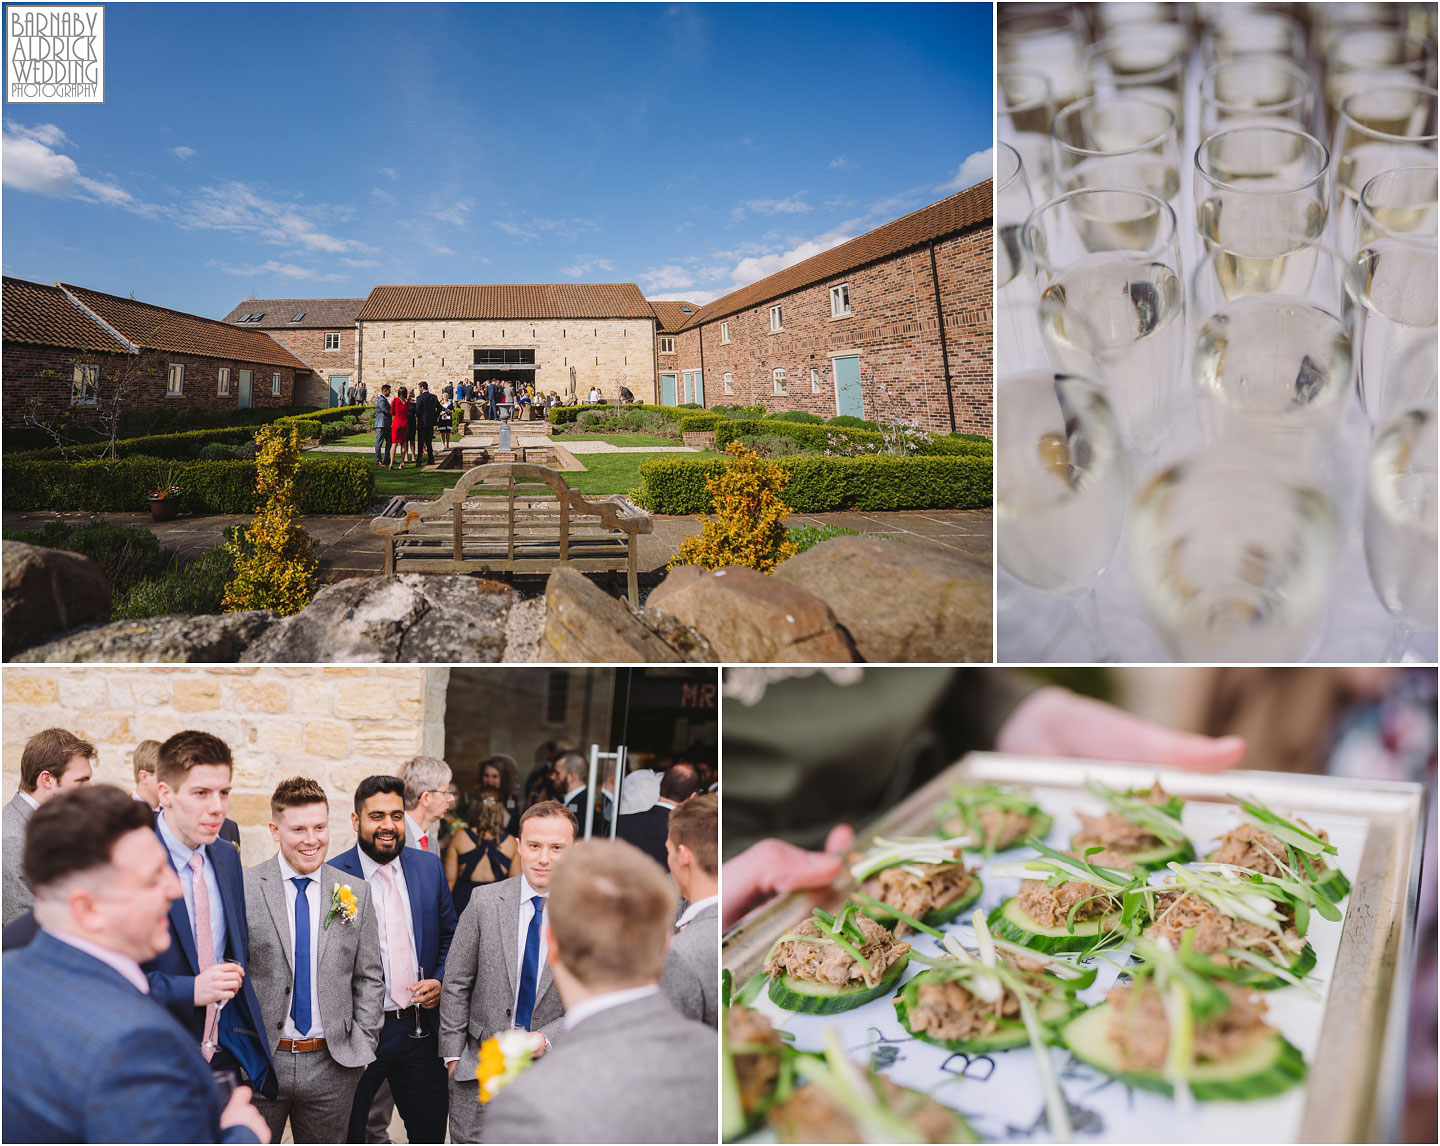 Blakefields Caterer at Yorkshire barn wedding, Yorkshire caterers Blakefields